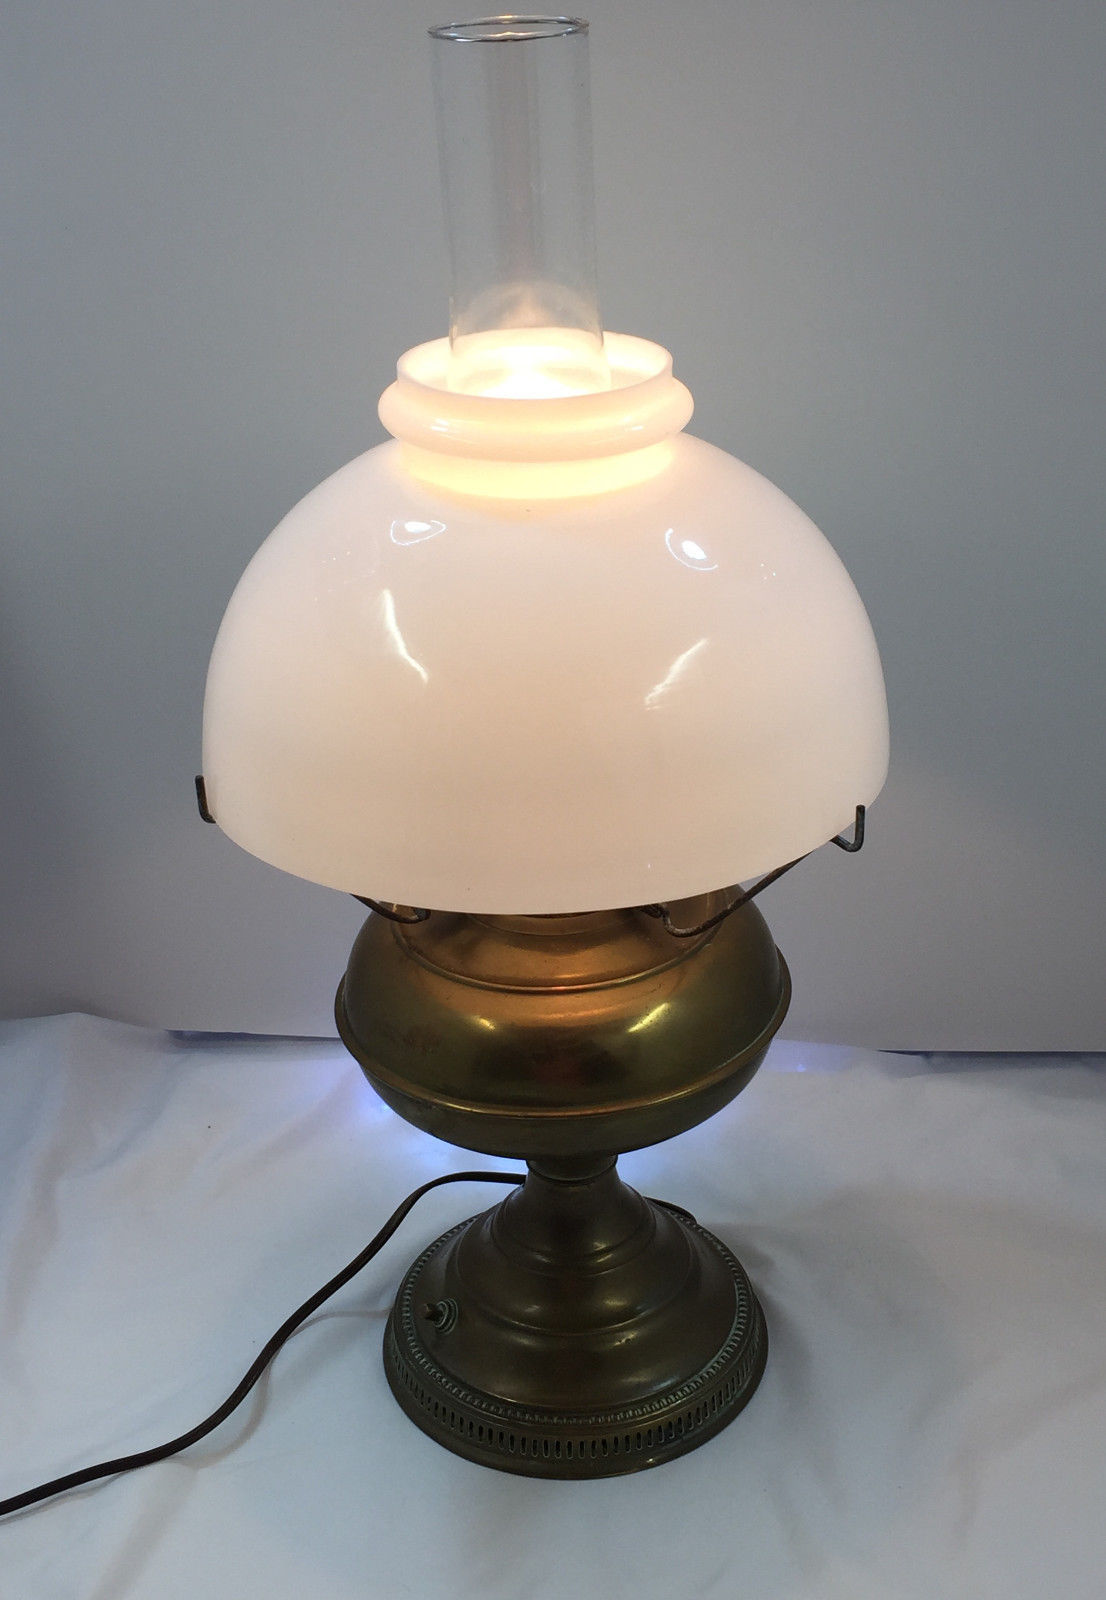 Brass oil lamp with milk glass shade lamp design ideas vintage electrified brass oil lamp with large milk glass shade mozeypictures Choice Image